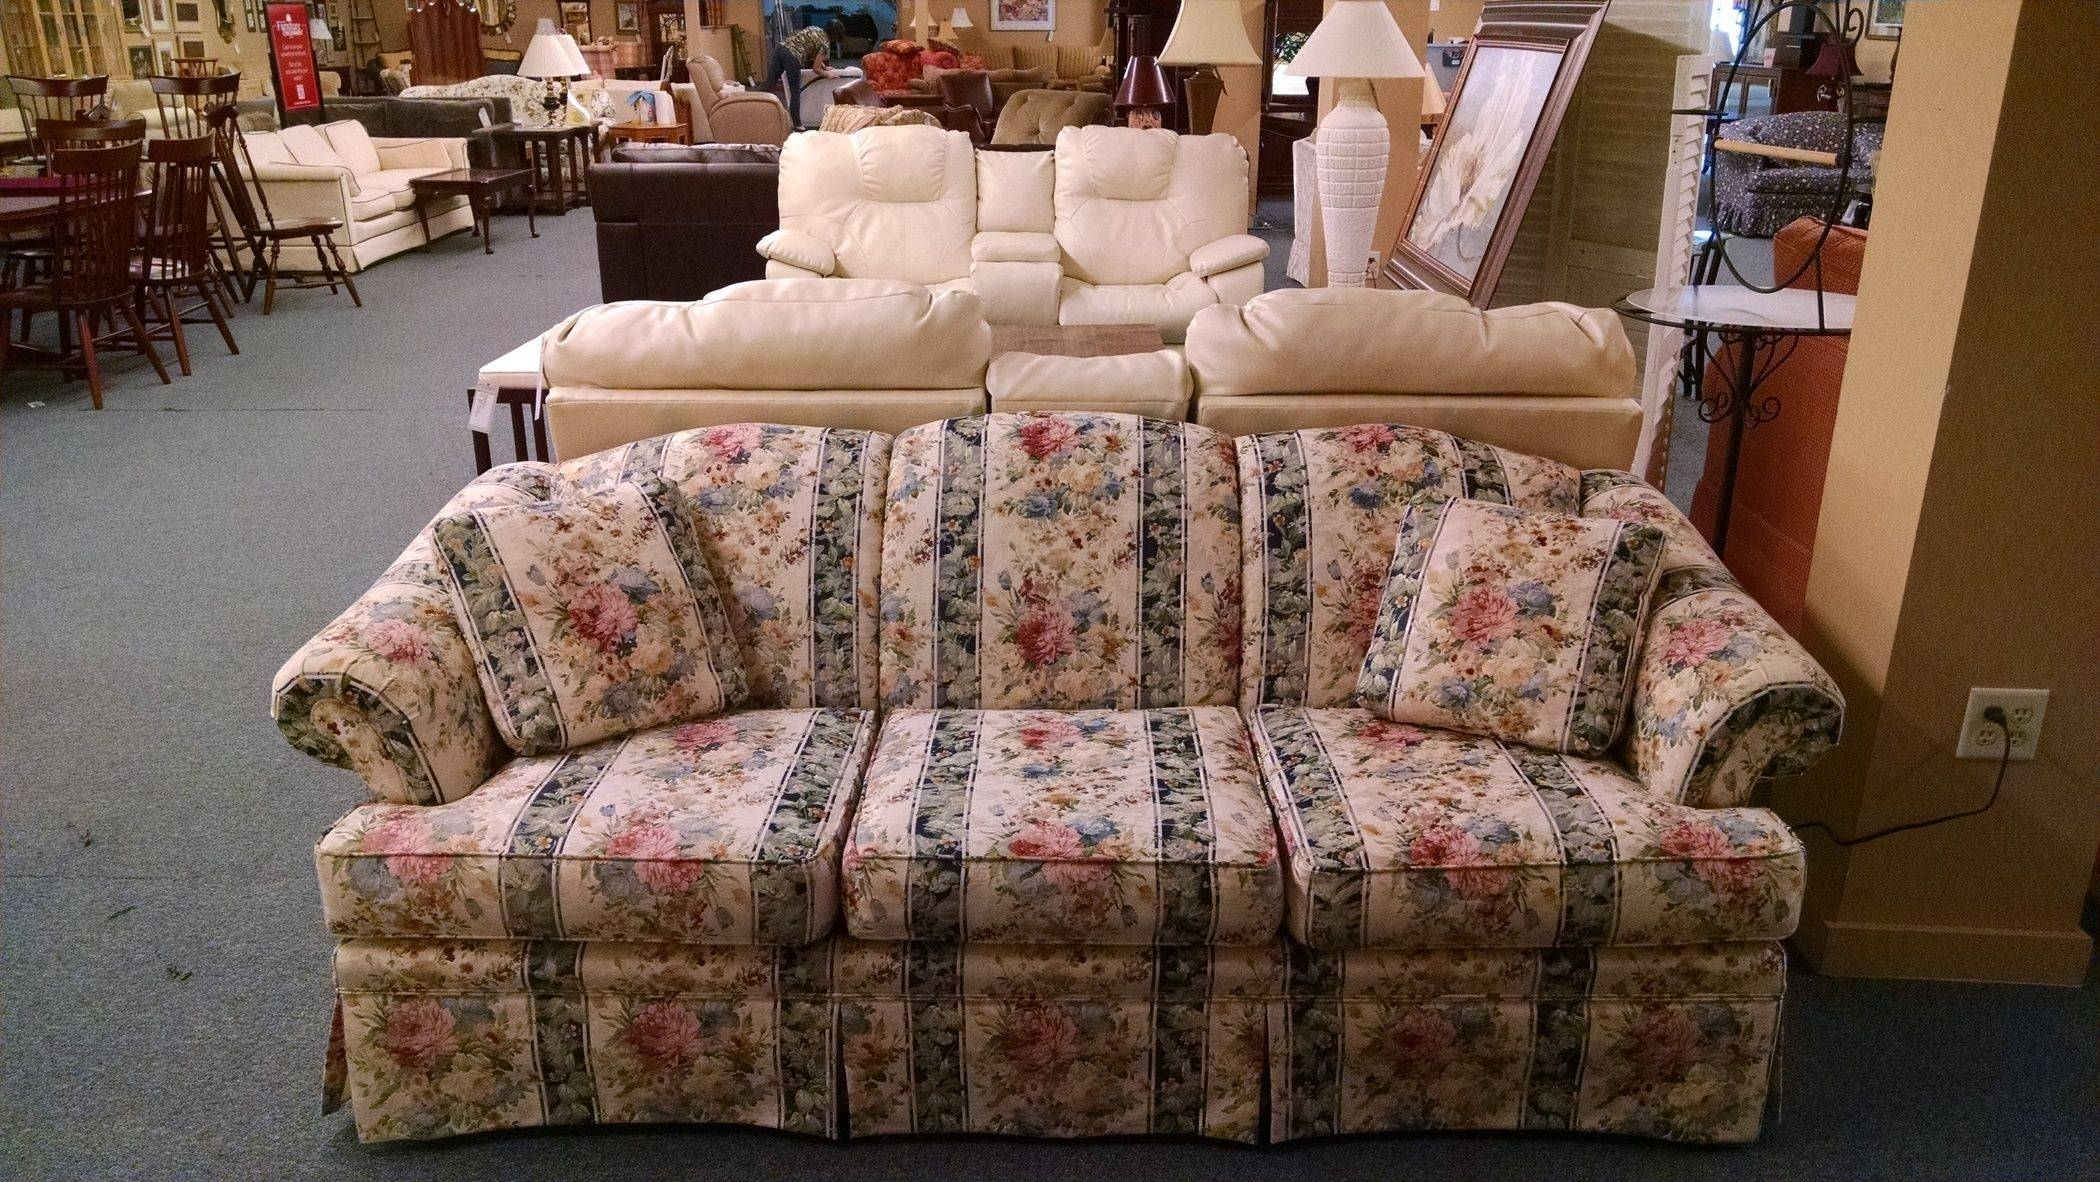 Floral Sofas | Sofas Decoration within Floral Sofas and Chairs (Image 12 of 15)